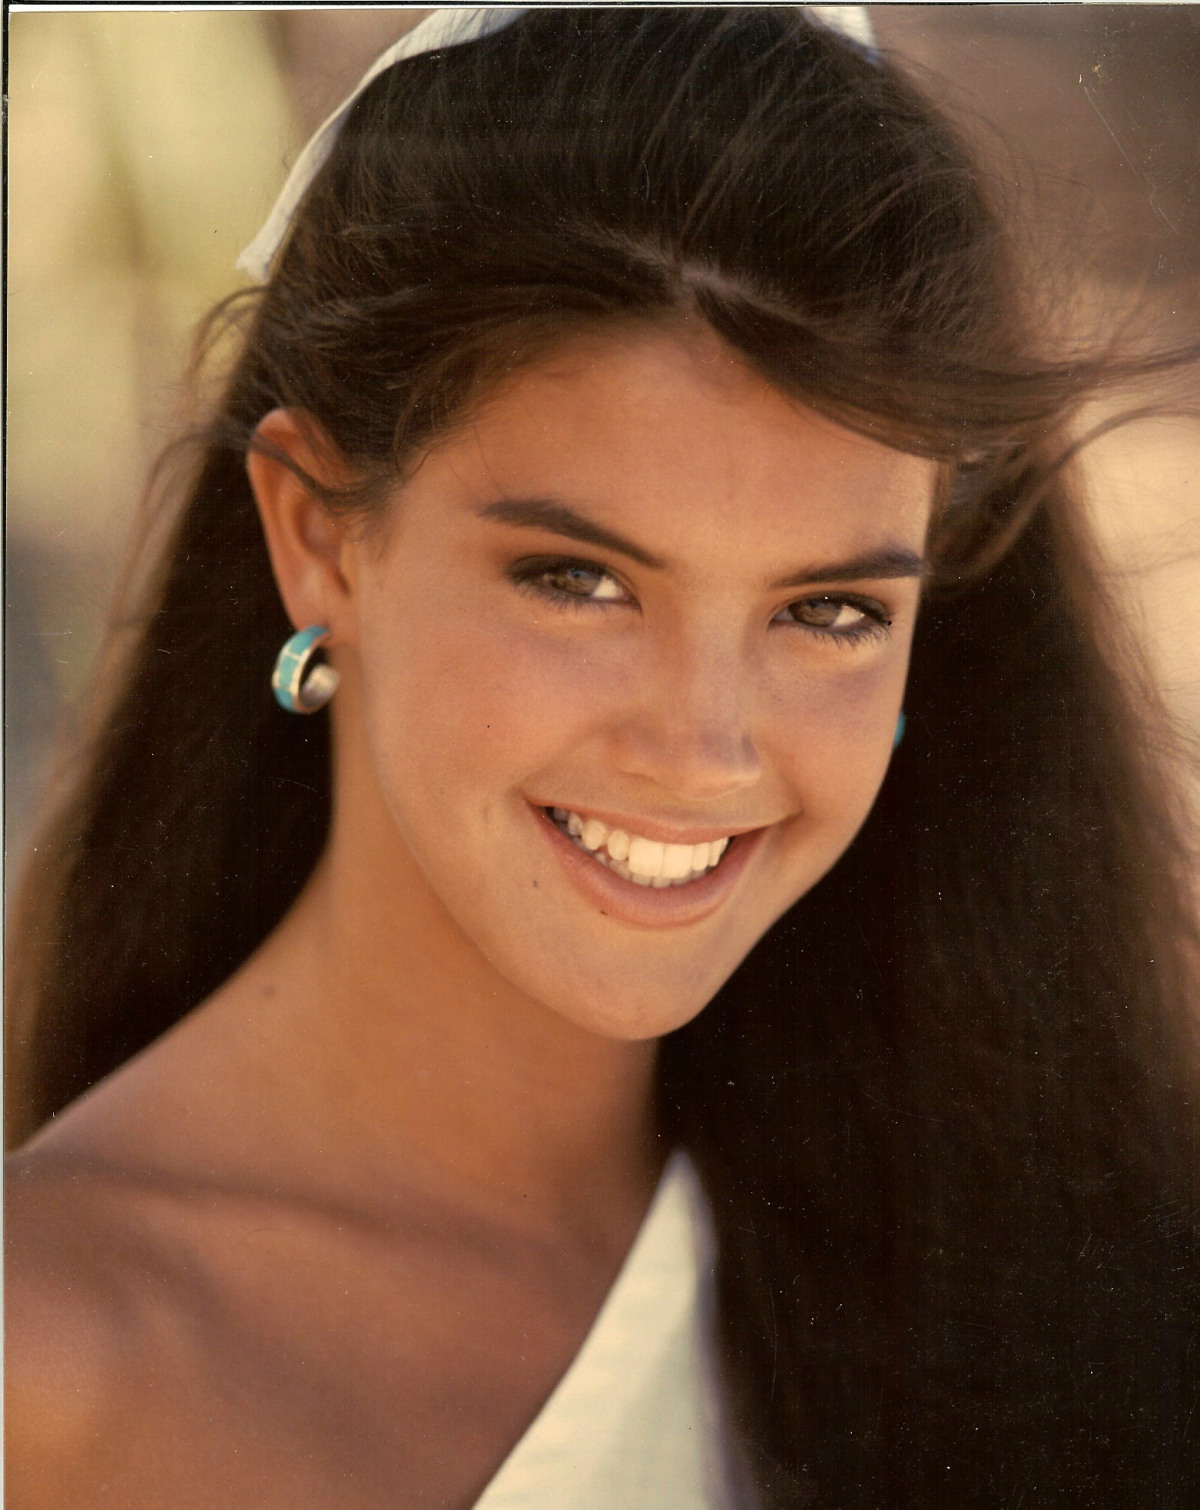 1200x1510 - Phoebe Cates Wallpapers 16